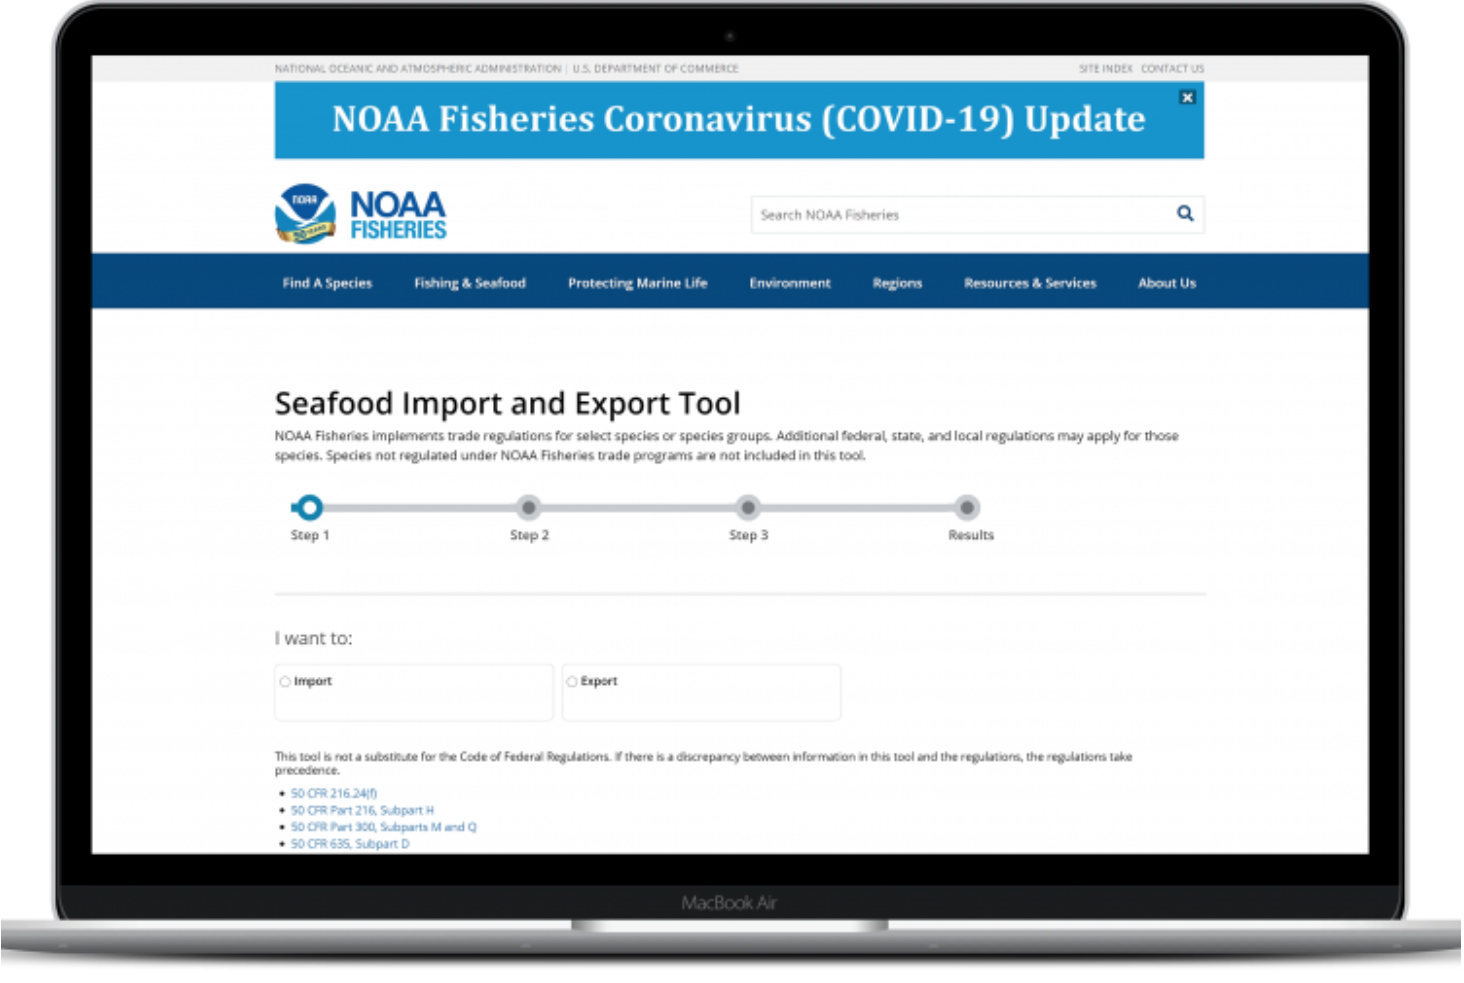 Seafood Import and Export Tool